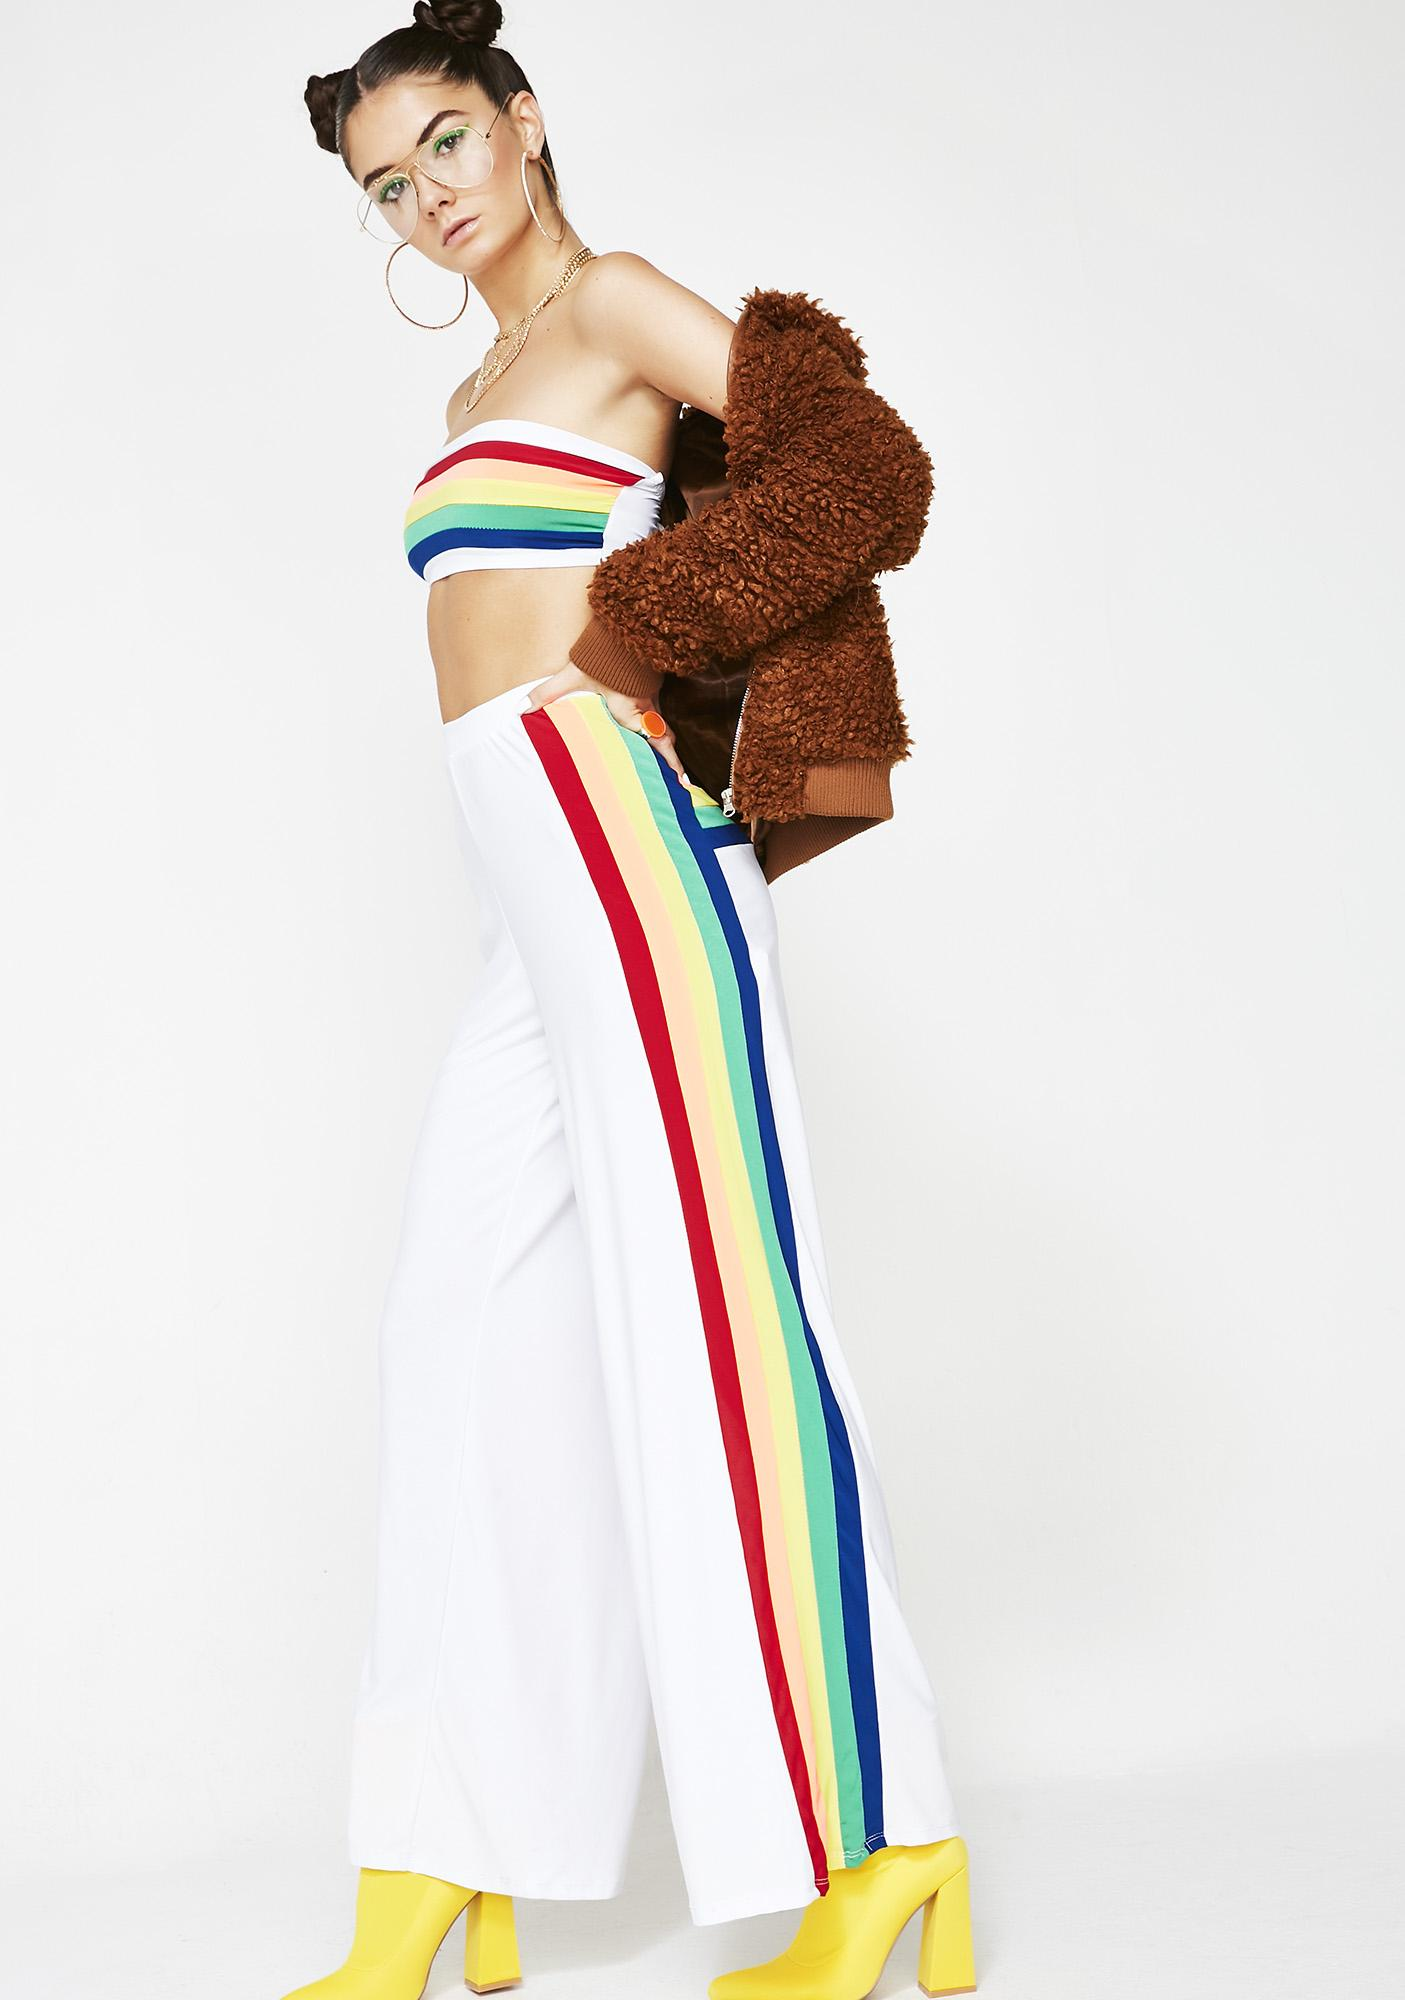 Trippy Rainbow Pant Set by Fashion Queen Mania